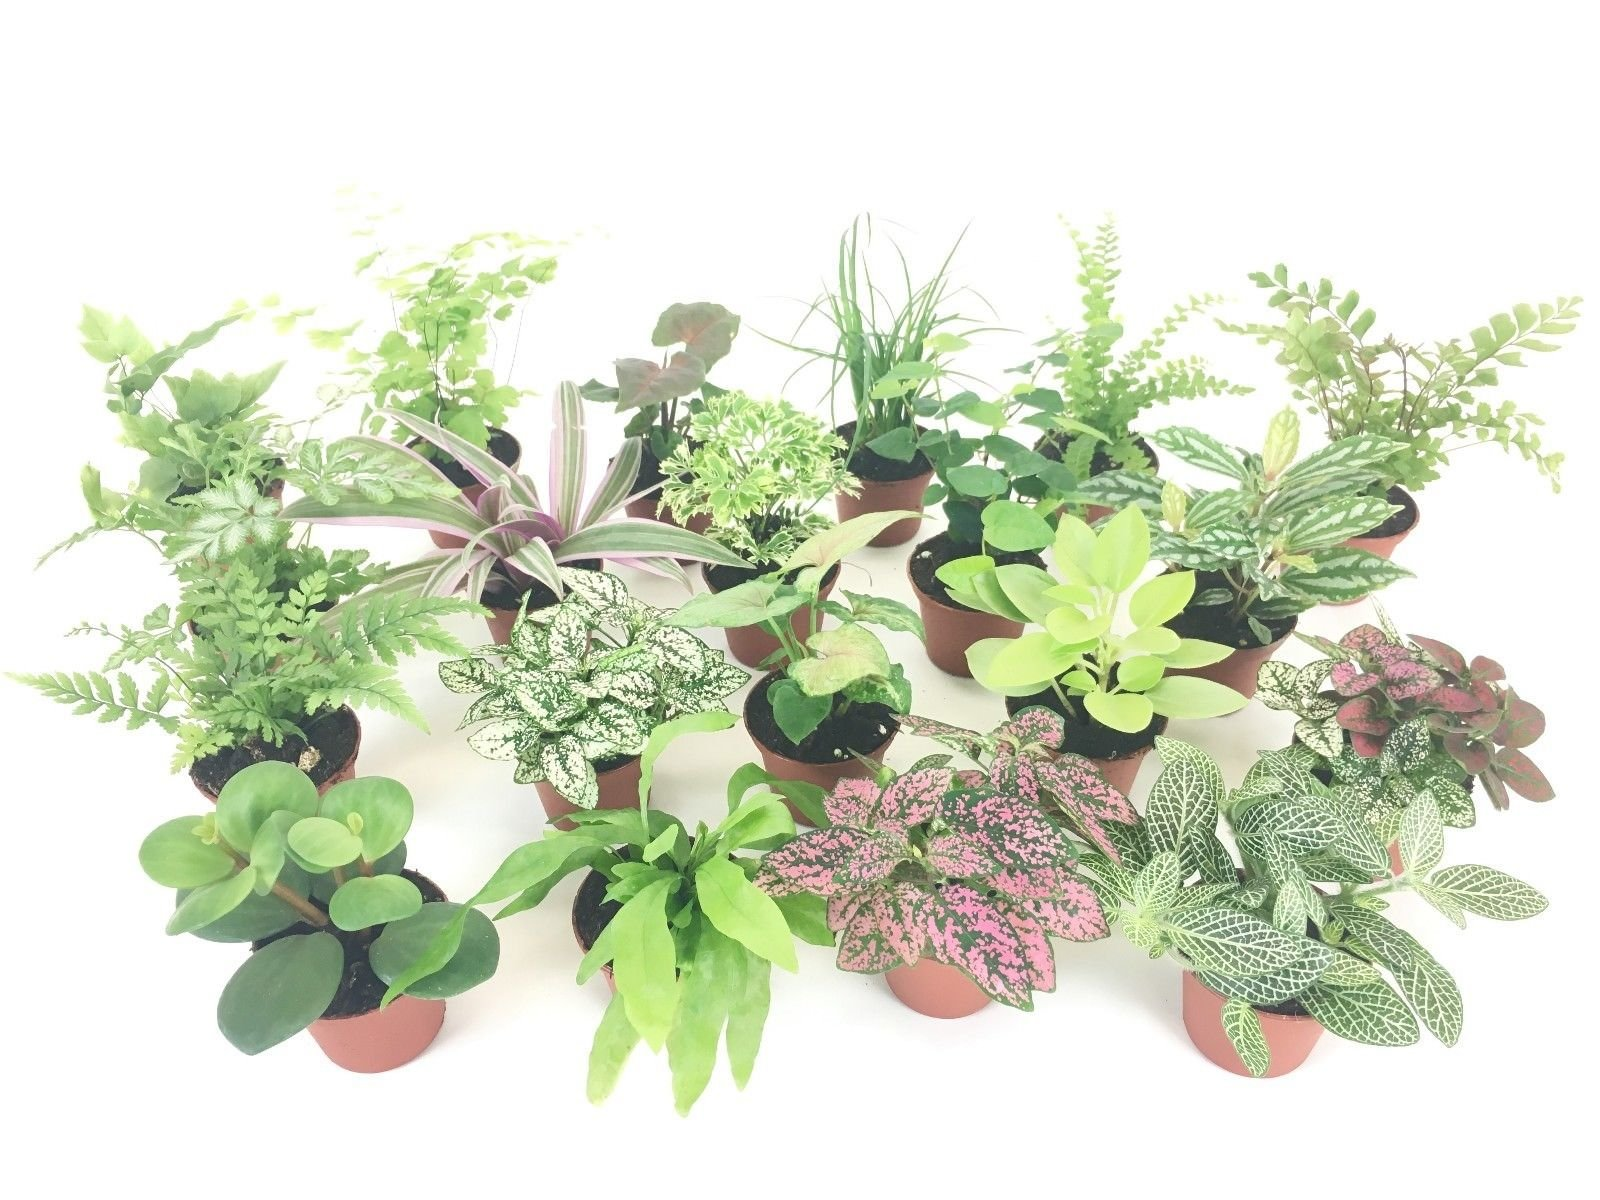 2'' Mini Fairy Garden & Terrarium Plants Assorted Varieties (Pack of 2 Plants) by Ma_Plant (Image #5)